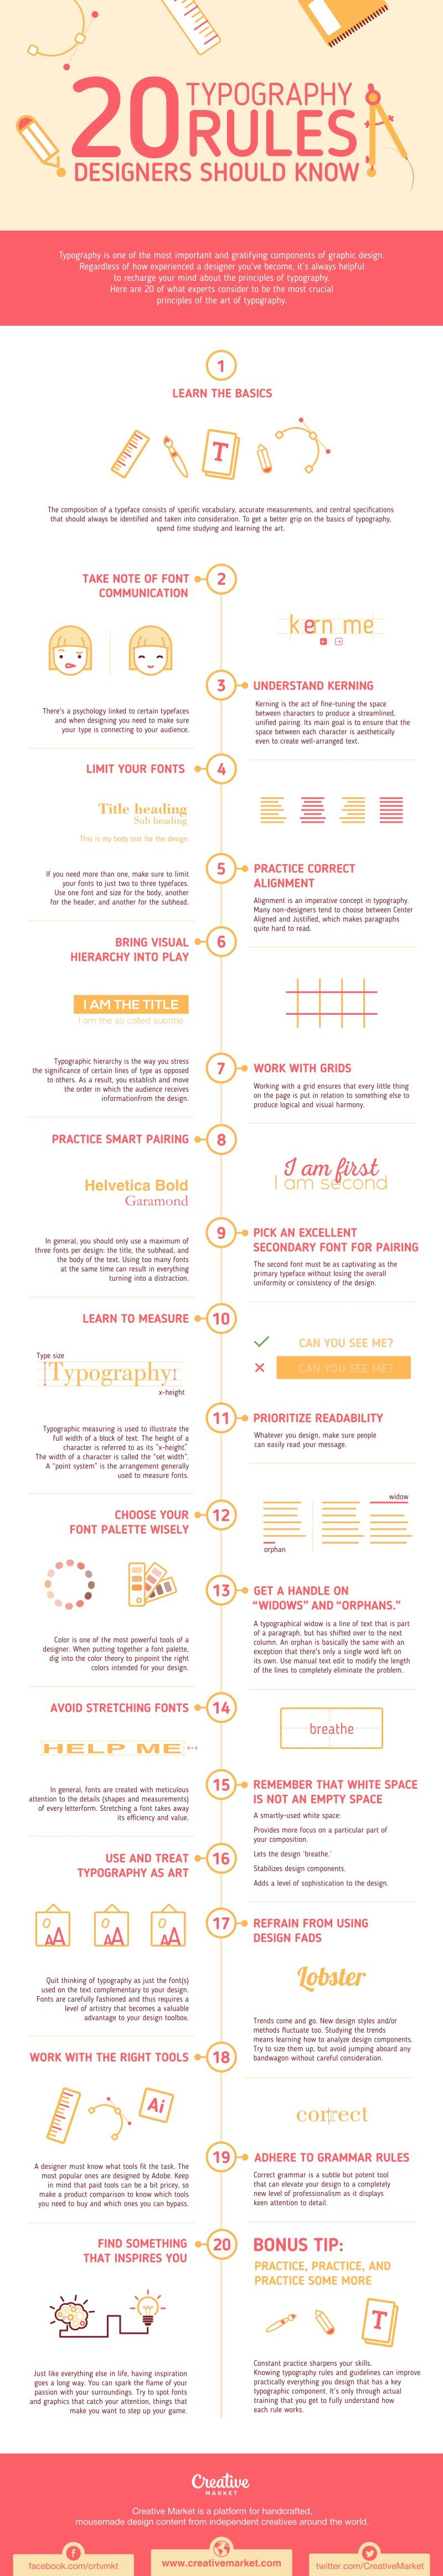 infographic  20 typography rules every graphic designer